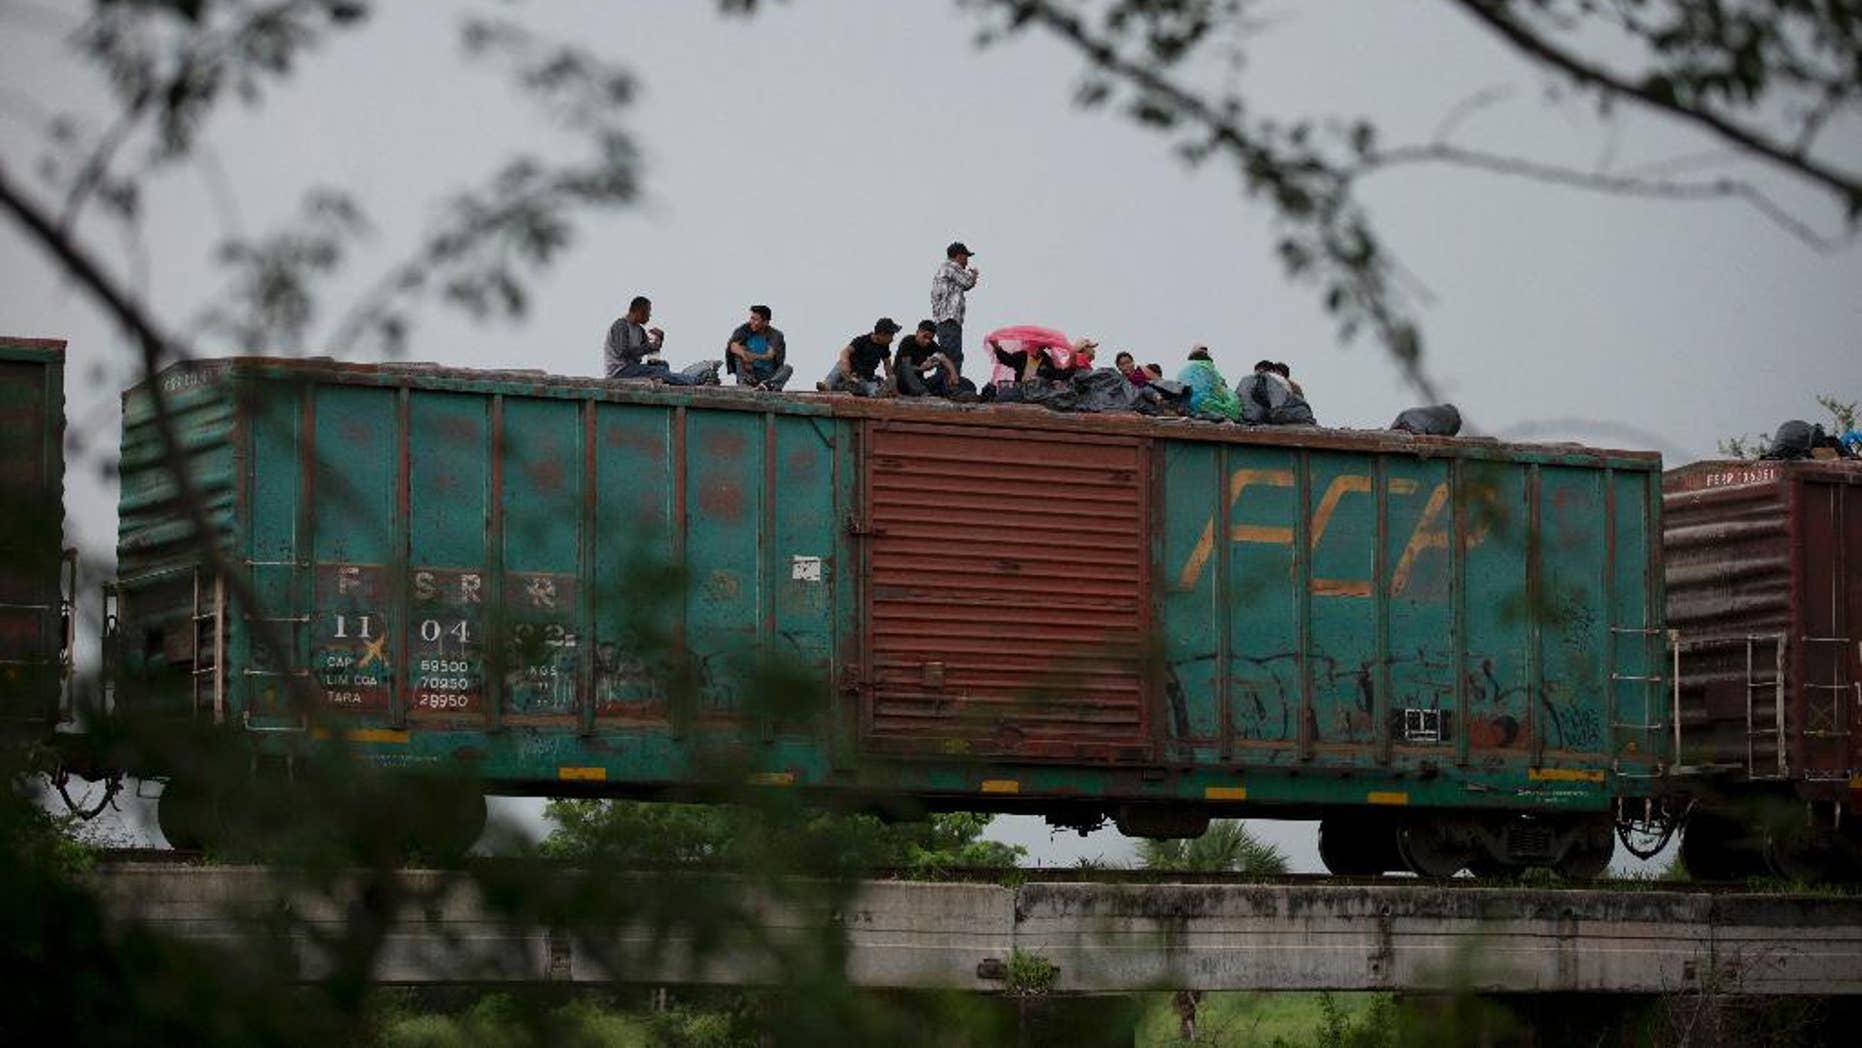 FILE - In this June 20, 2014 file photo, Central American migrants wait atop the freight train they had been traveling north on, as it starts to rain after the train suffered a minor derailment outside Reforma de Pineda, Chiapas state, Mexico. Mexico now deports more Central American migrants than the United States, a dramatic shift since the U.S. asked Mexico for help a year ago with a spike in illegal migration, especially among unaccompanied minors. (AP Photo/Rebecca Blackwell, File)